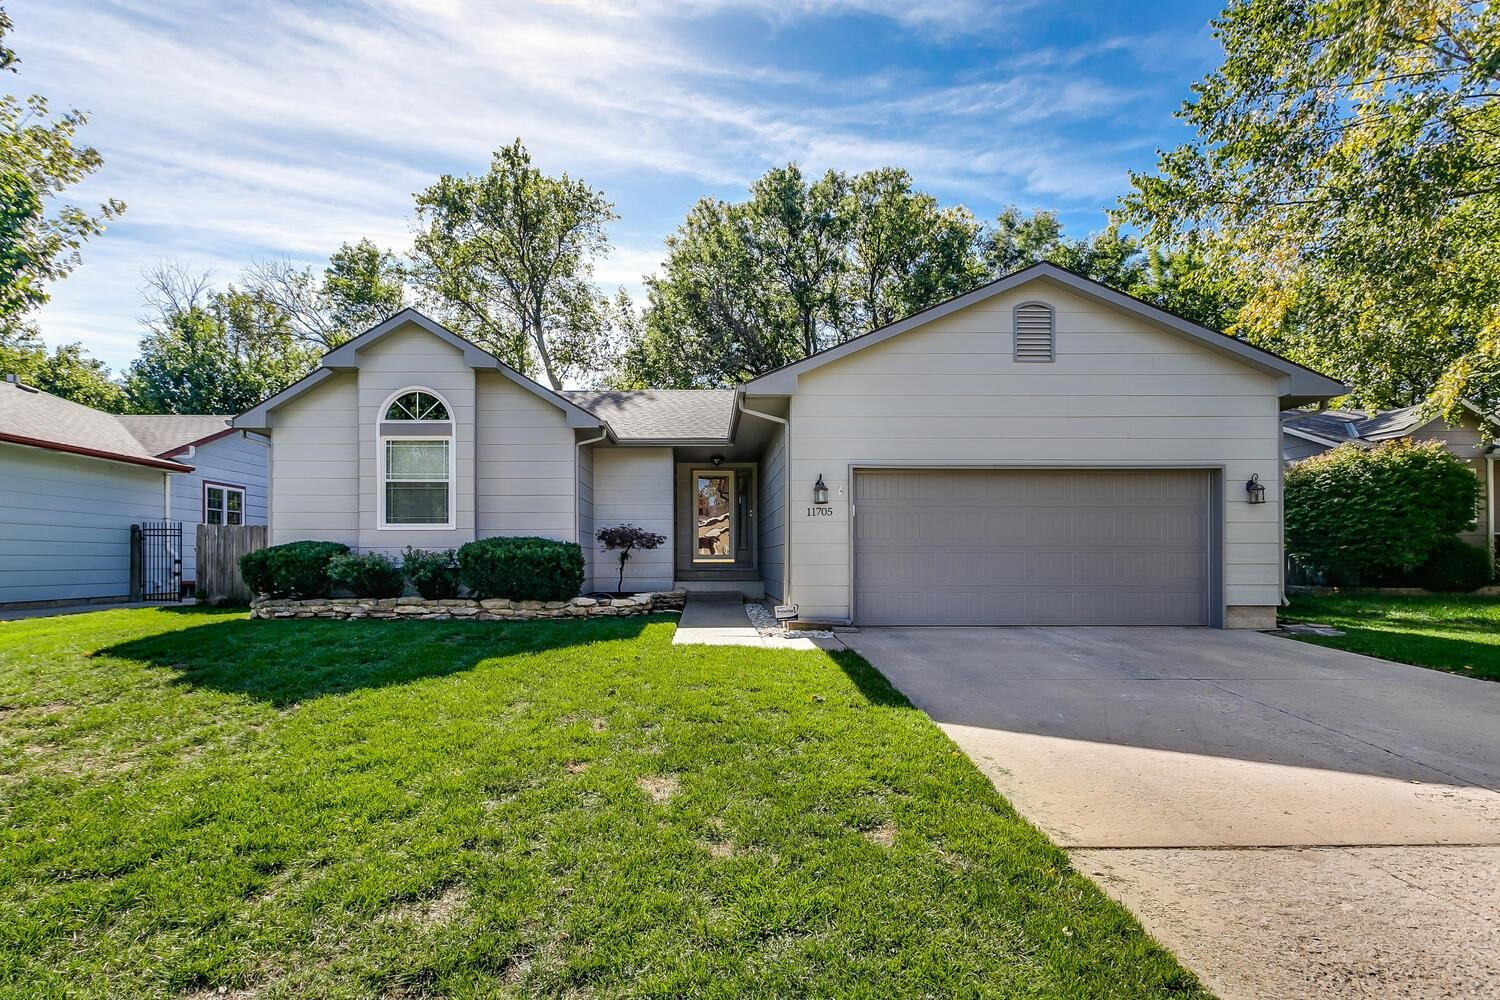 This awesome home is move-in ready and features an open floor plan, huge family room, great location